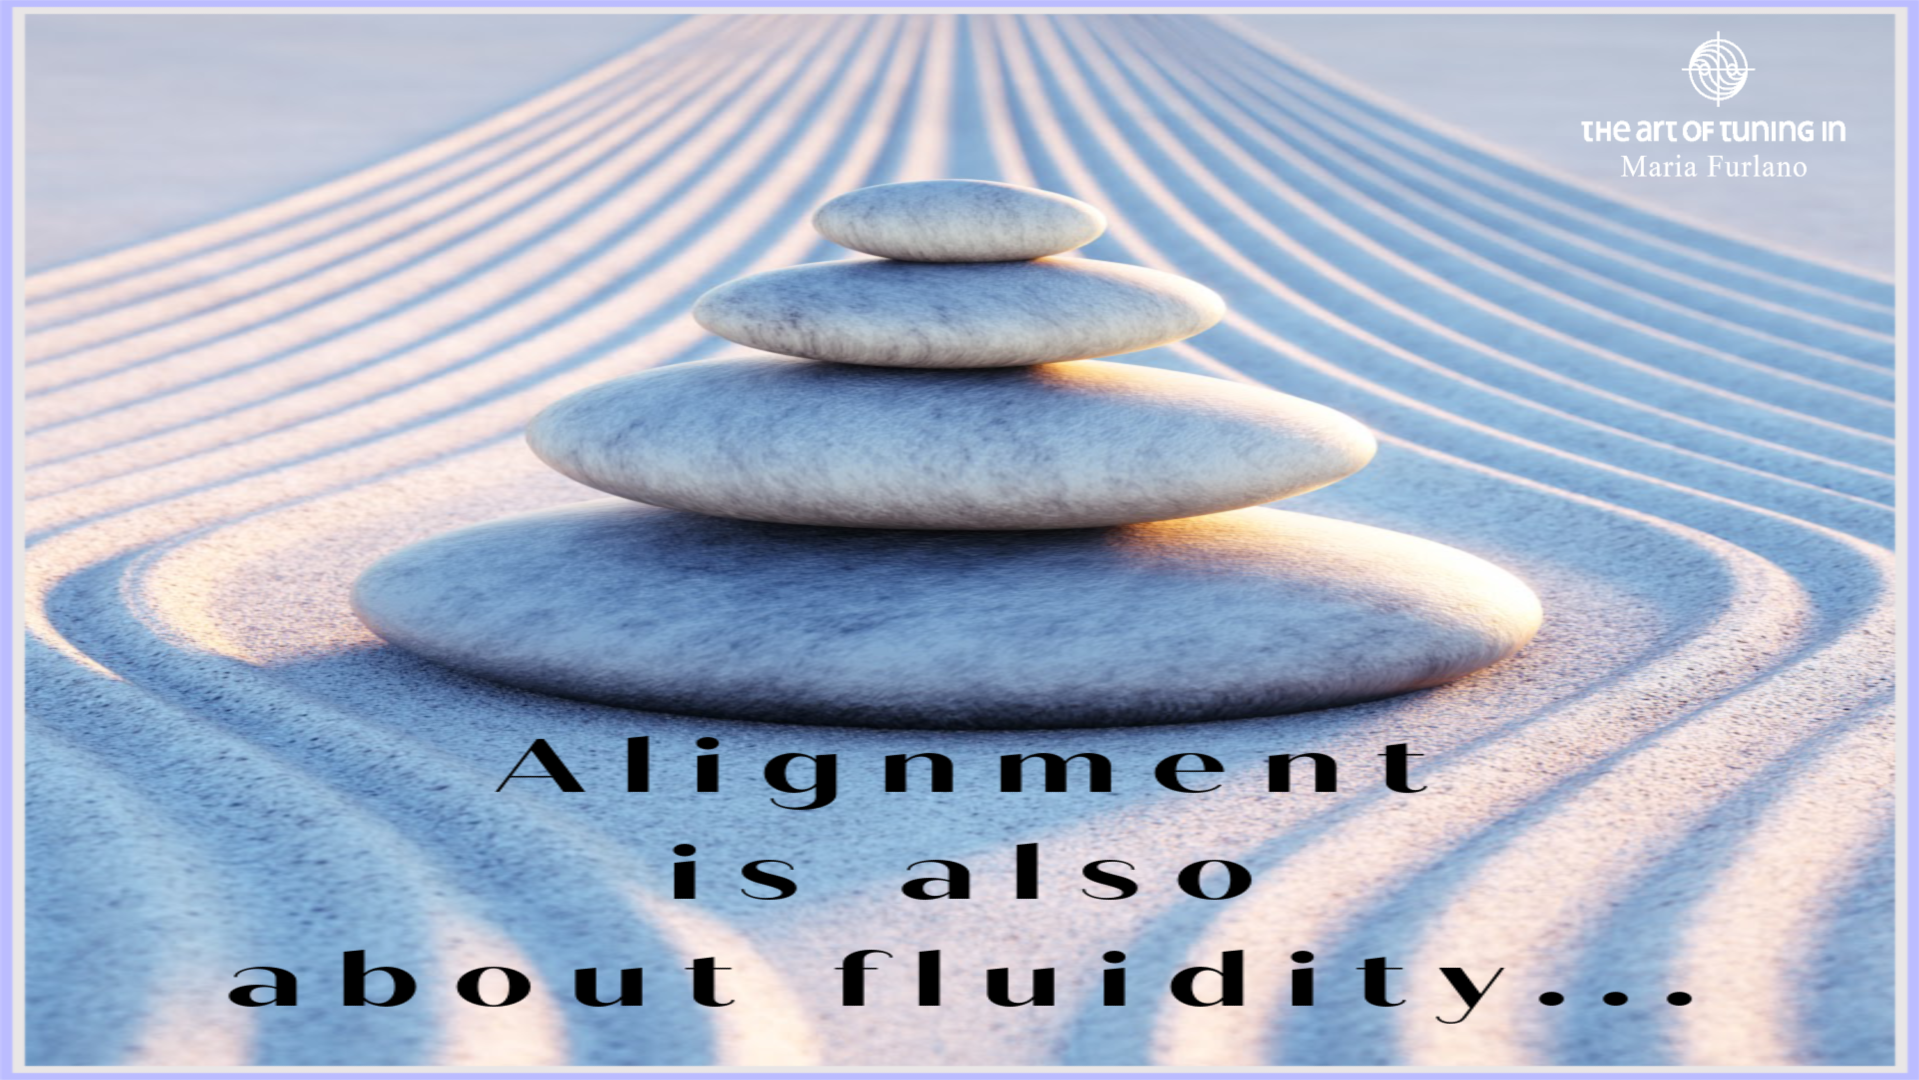 alignment is also about fluidity Maria Furlano Instagram